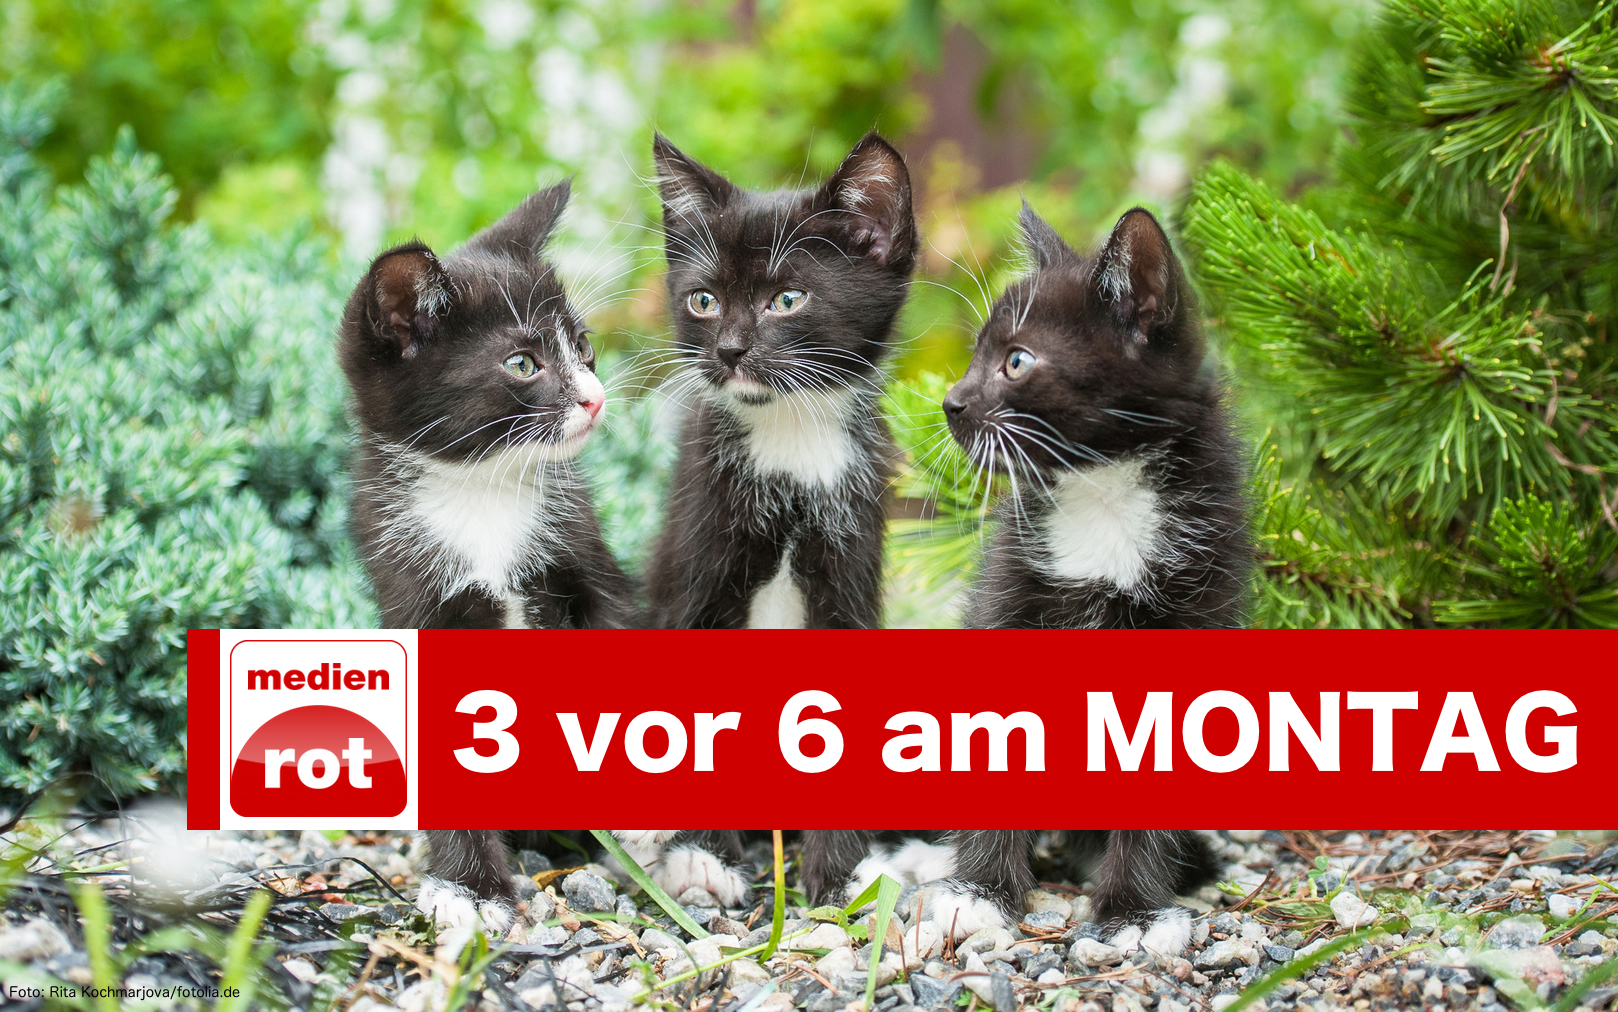 Three little black kittens sitting in the garden